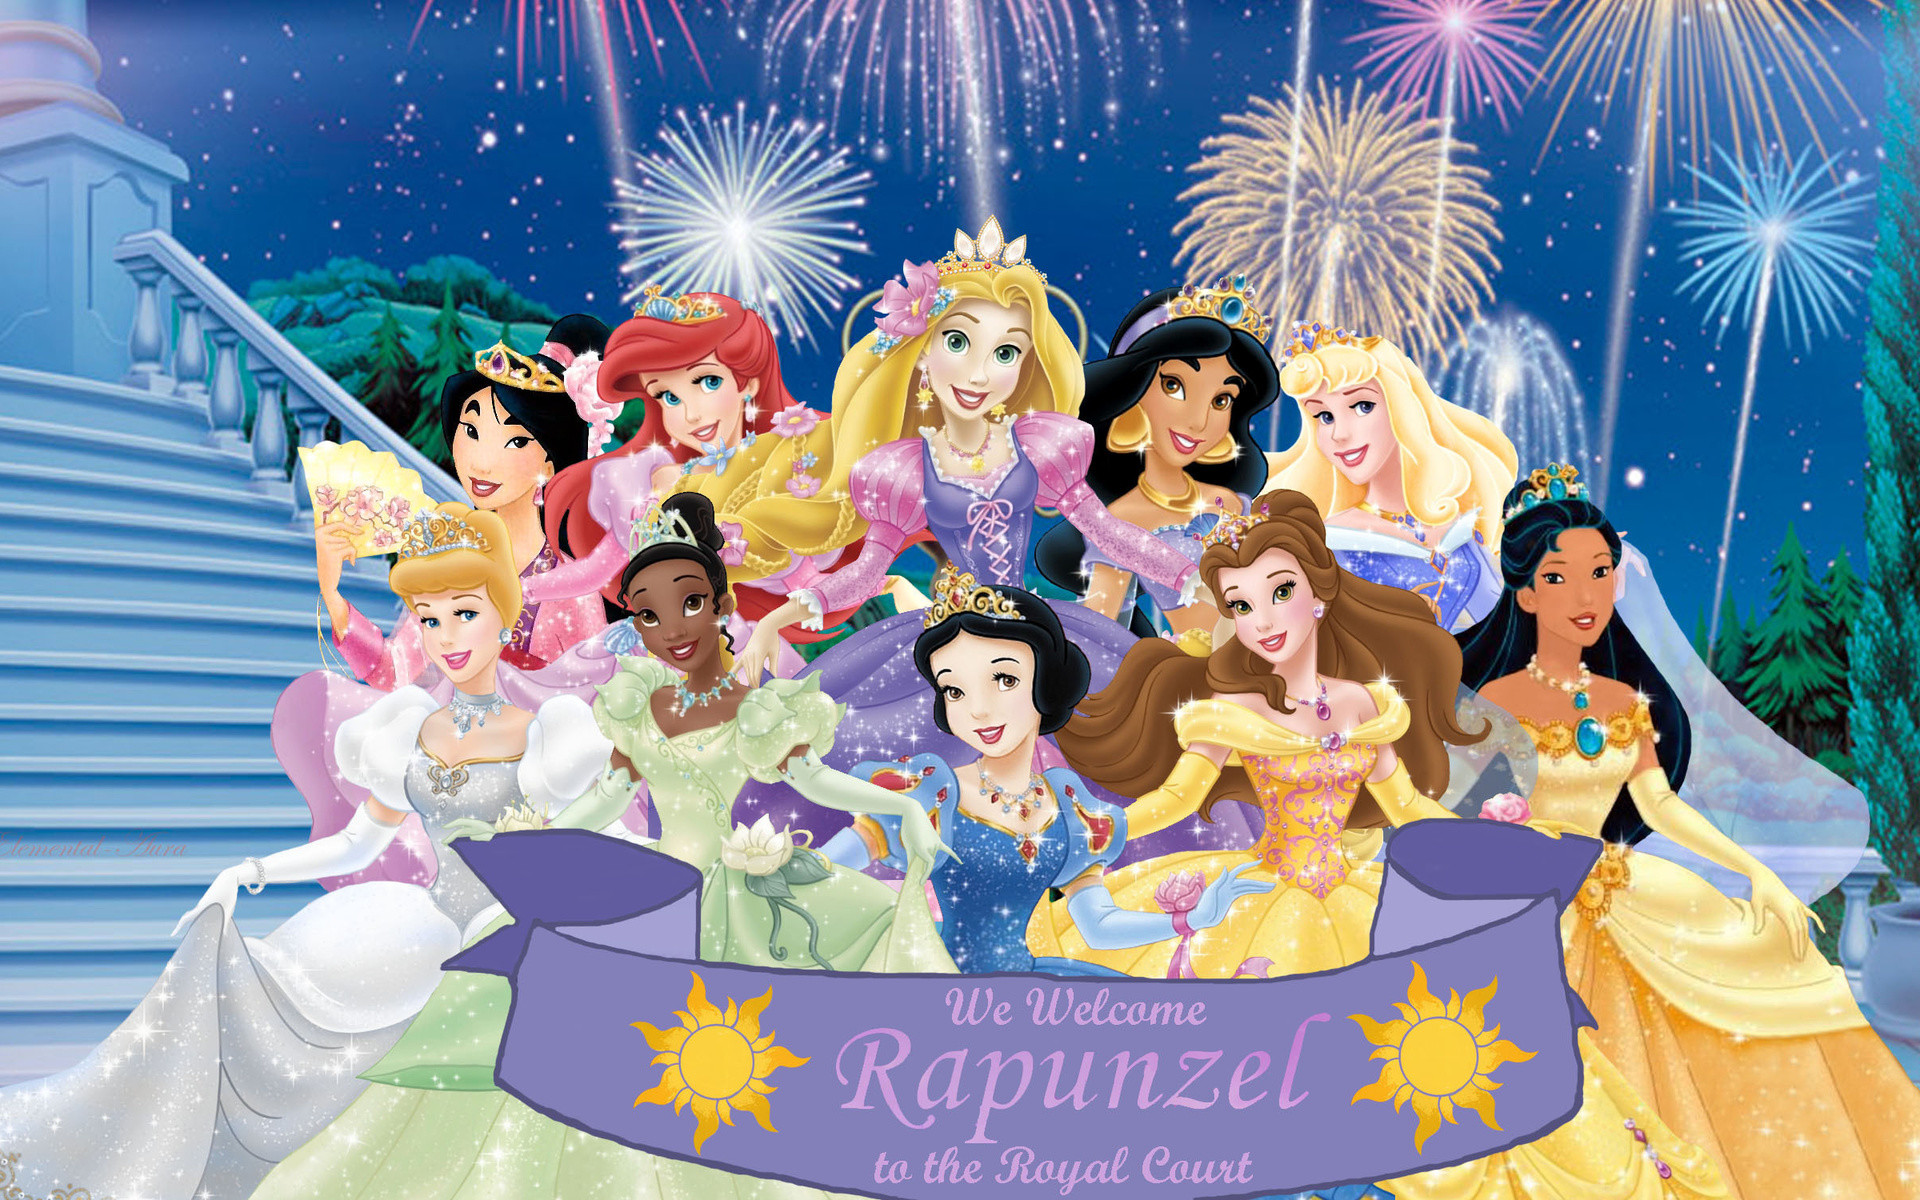 1920x1200 High Resolution Disney Princess Desktop Background Full Size .